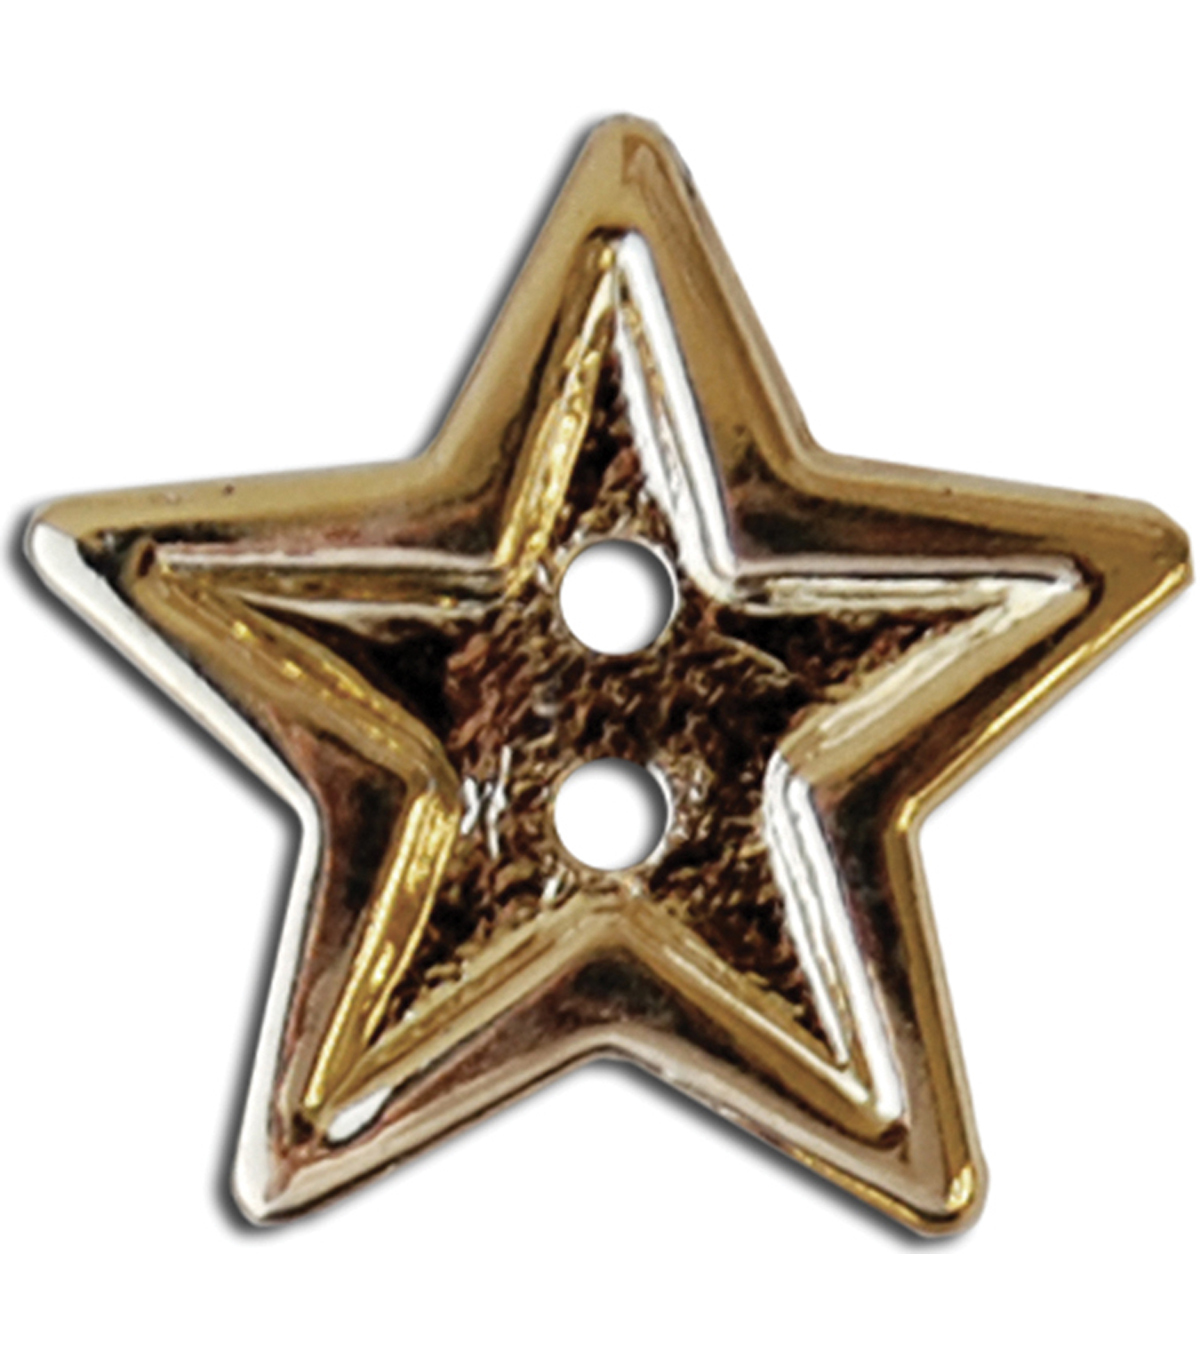 Blumenthal Lansing-Slimline Buttons-Bright Gold Star 2-Hole 7/8\u0022 3/Card